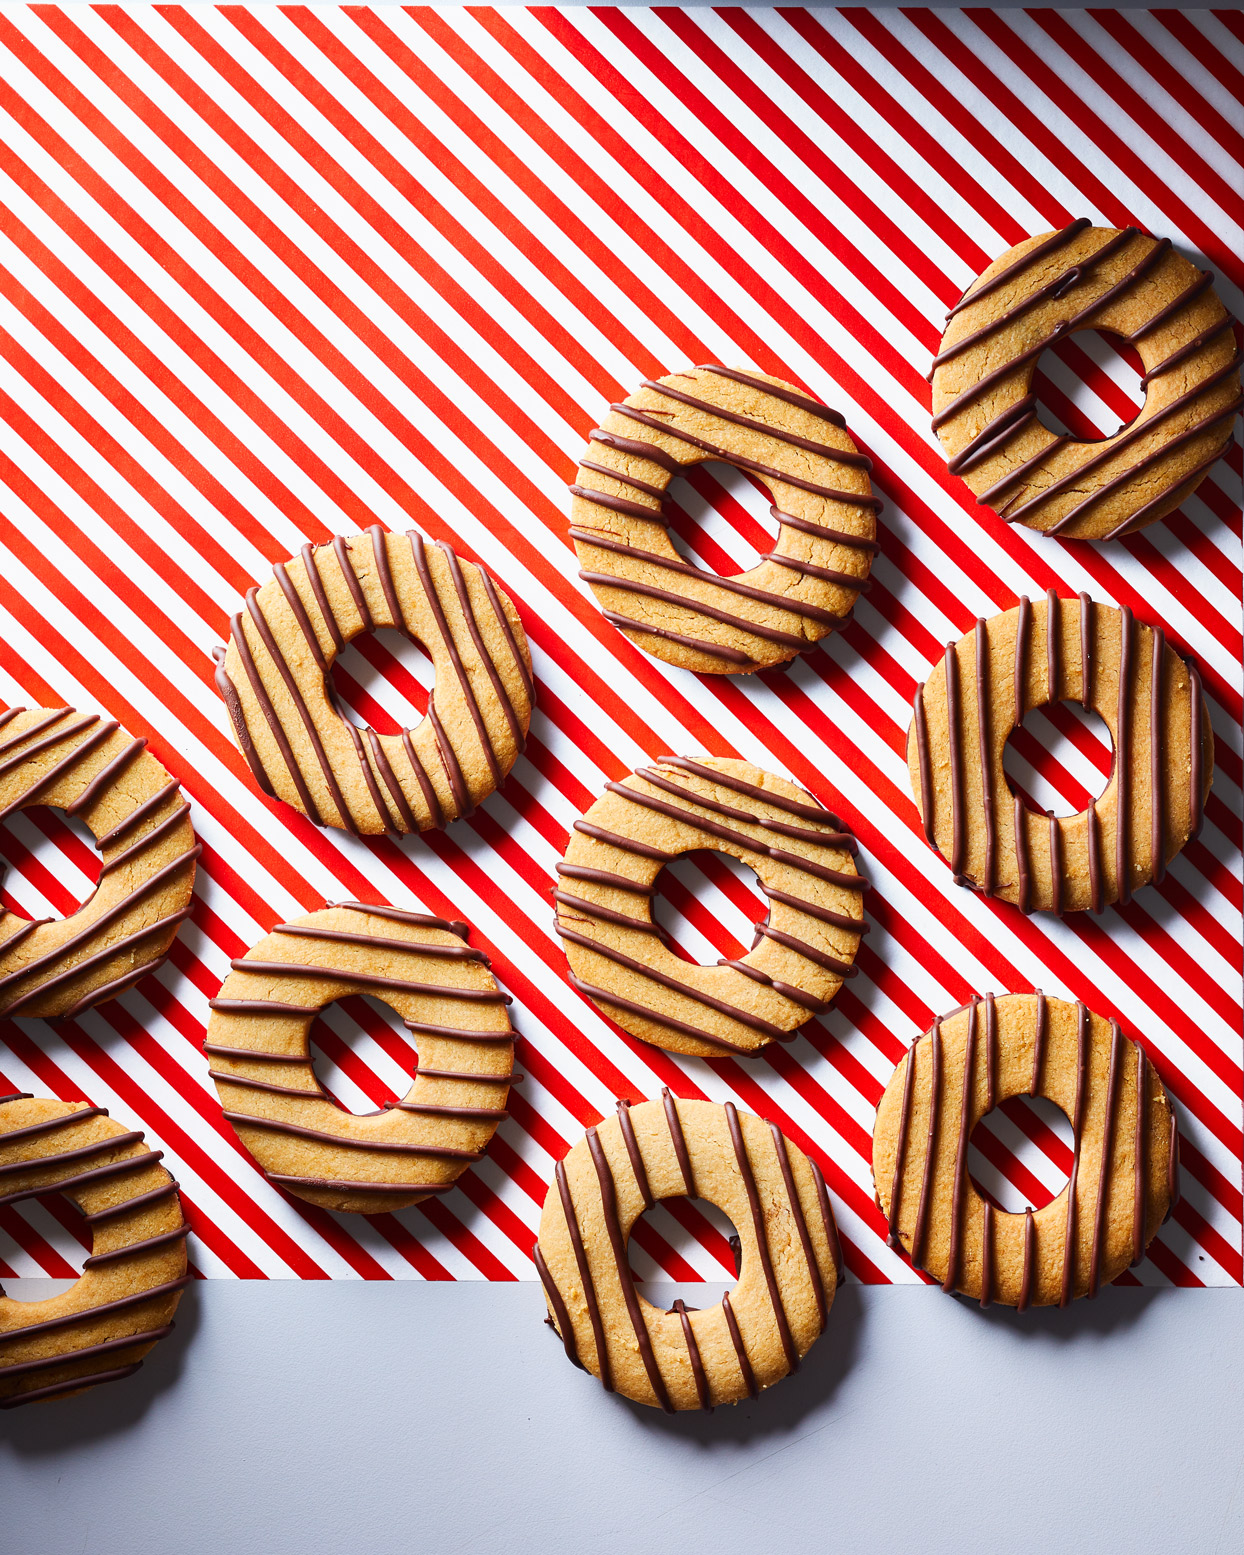 Fudgy Striped Peanut Butter Shortbread on red and white background